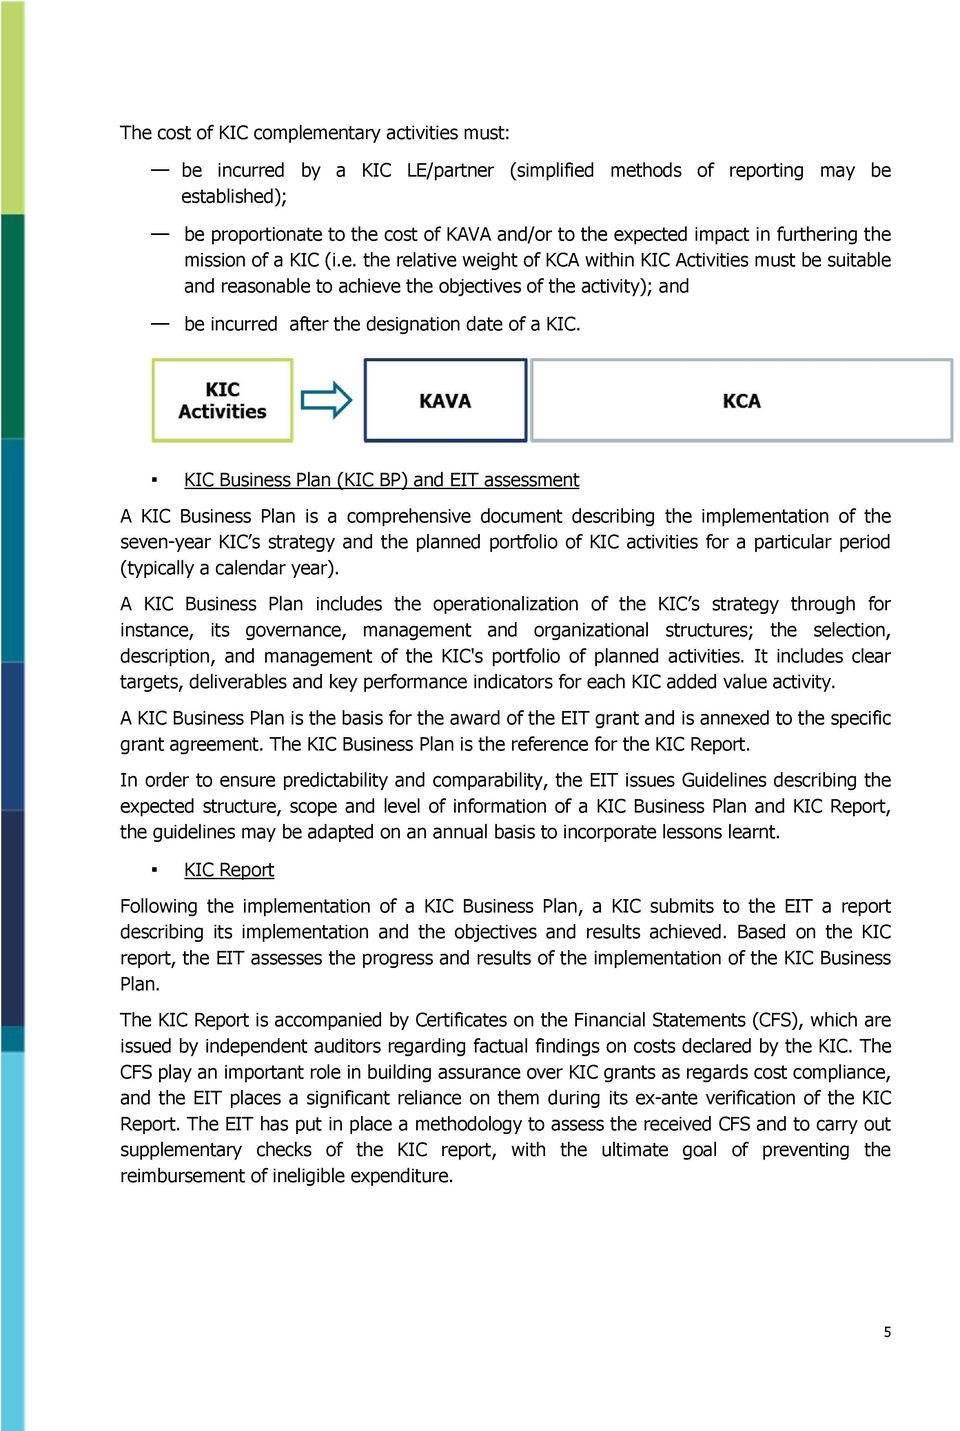 KIC Business Plan (KIC BP) and EIT assessment A KIC Business Plan is a comprehensive document describing the implementation of the seven-year KIC s strategy and the planned portfolio of KIC